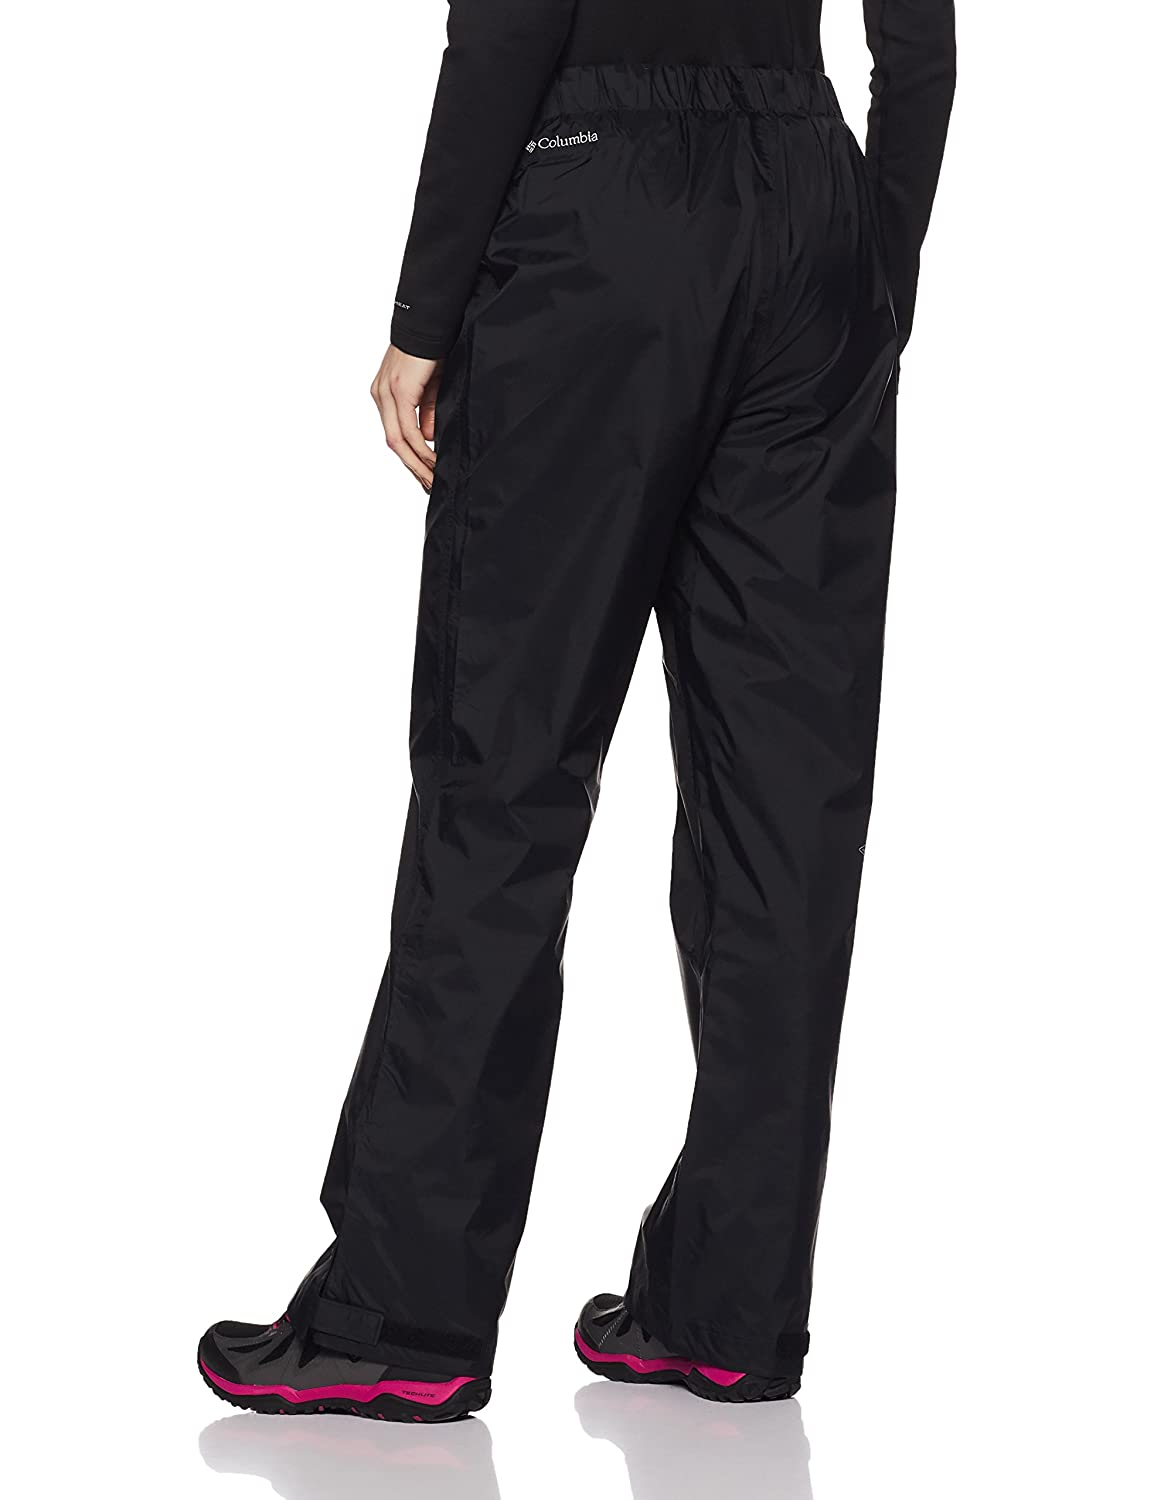 9849bde08e Amazon.com  Columbia Women s Storm Surge Pant  Clothing